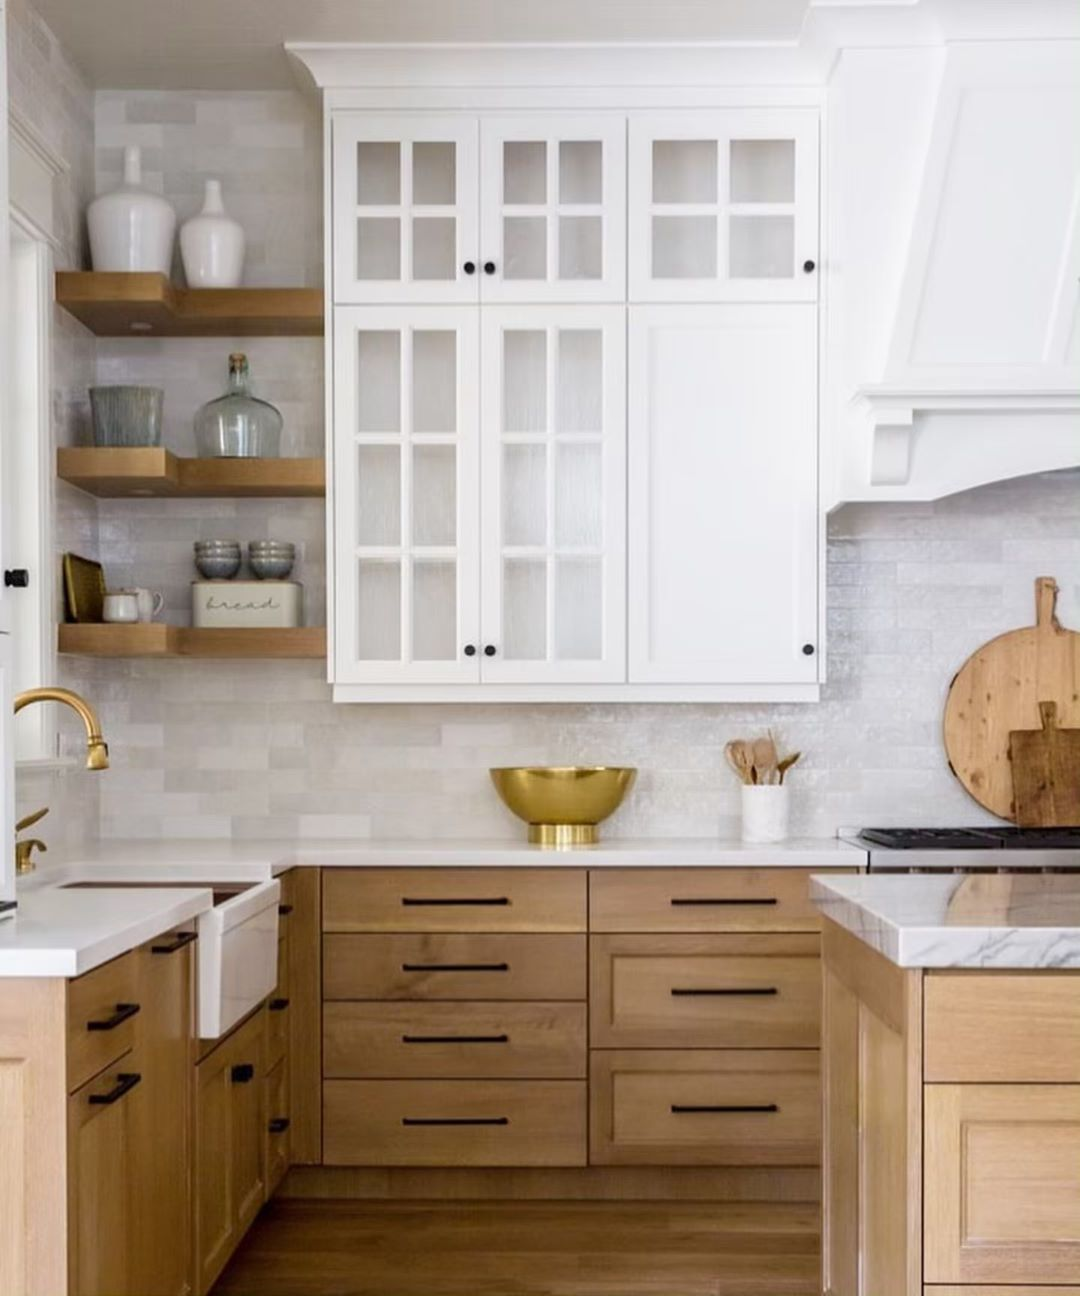 Juxtaposed Interiors On Instagram Anyone Else Loving The Mixed Cabinet Colors We Are Seeing I Am For Sur Kitchen Design Home Kitchens Kitchen Remodel